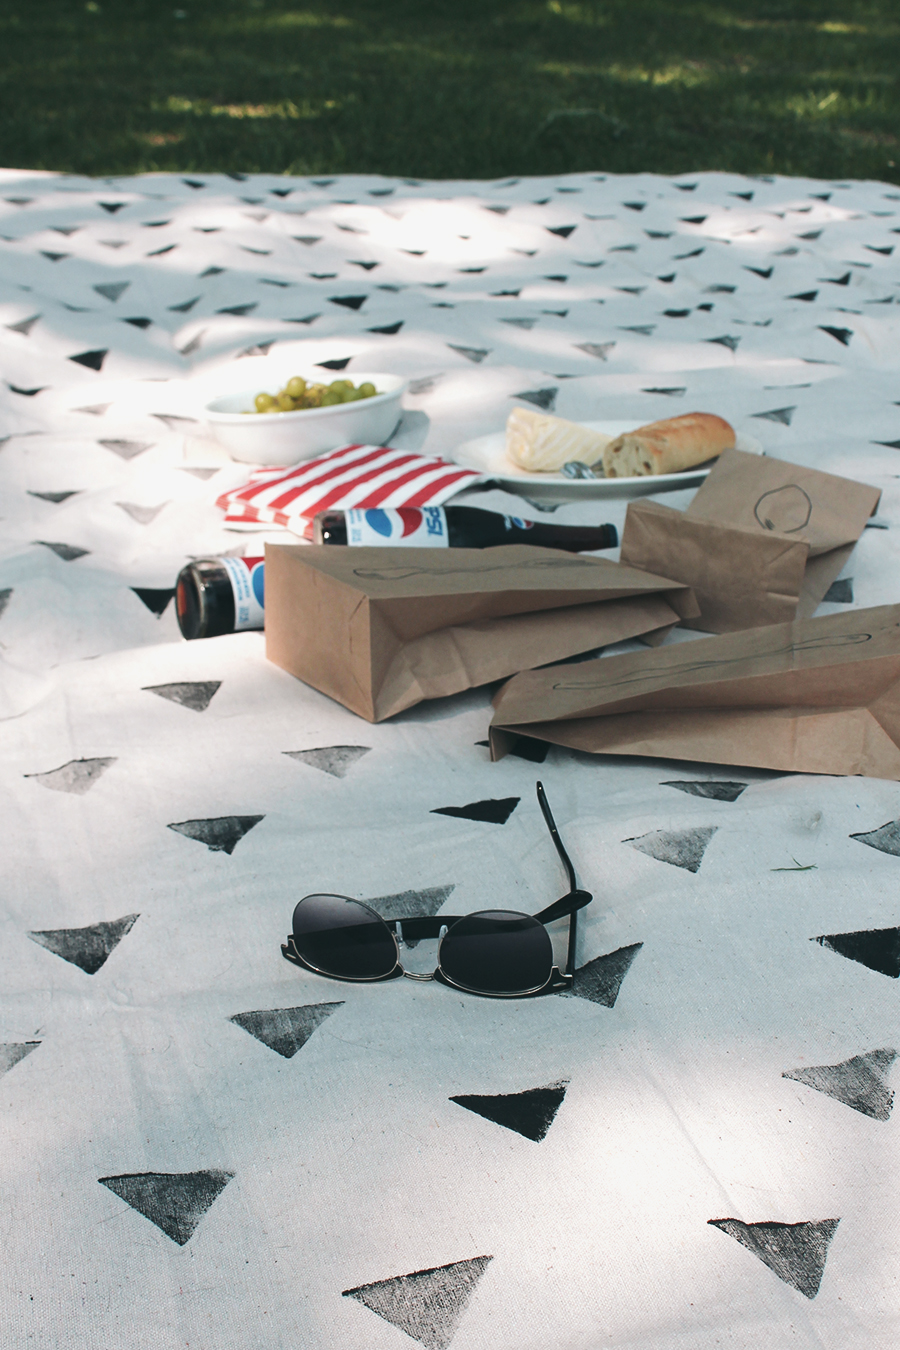 diy patterned picnic blanket - almost makes perfect